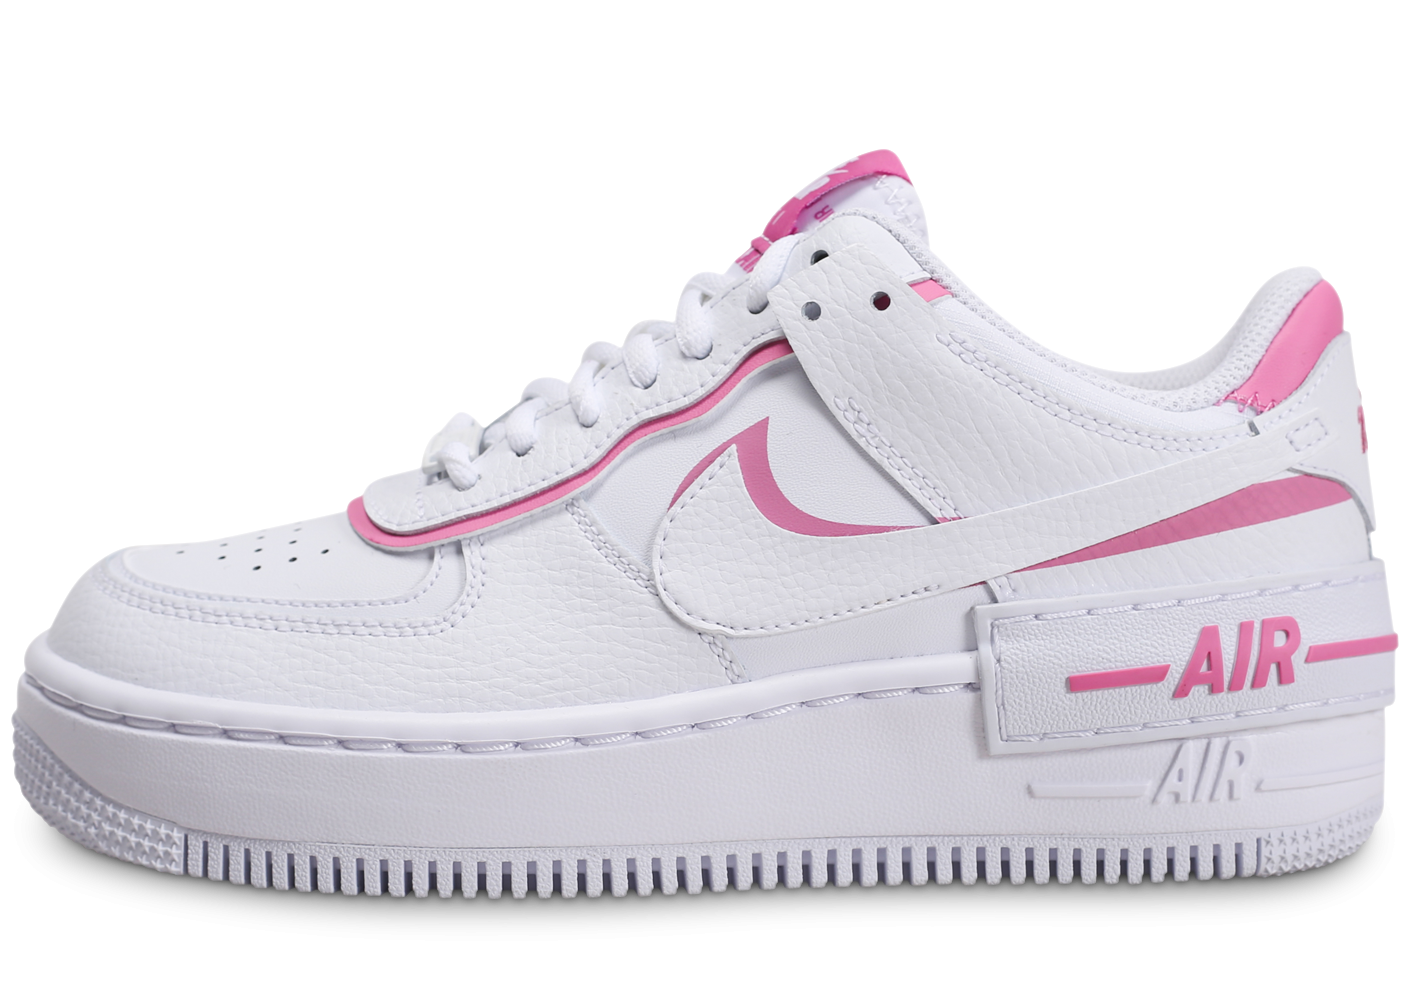 Nike Air Force 1 Shadow blanc rose Femme